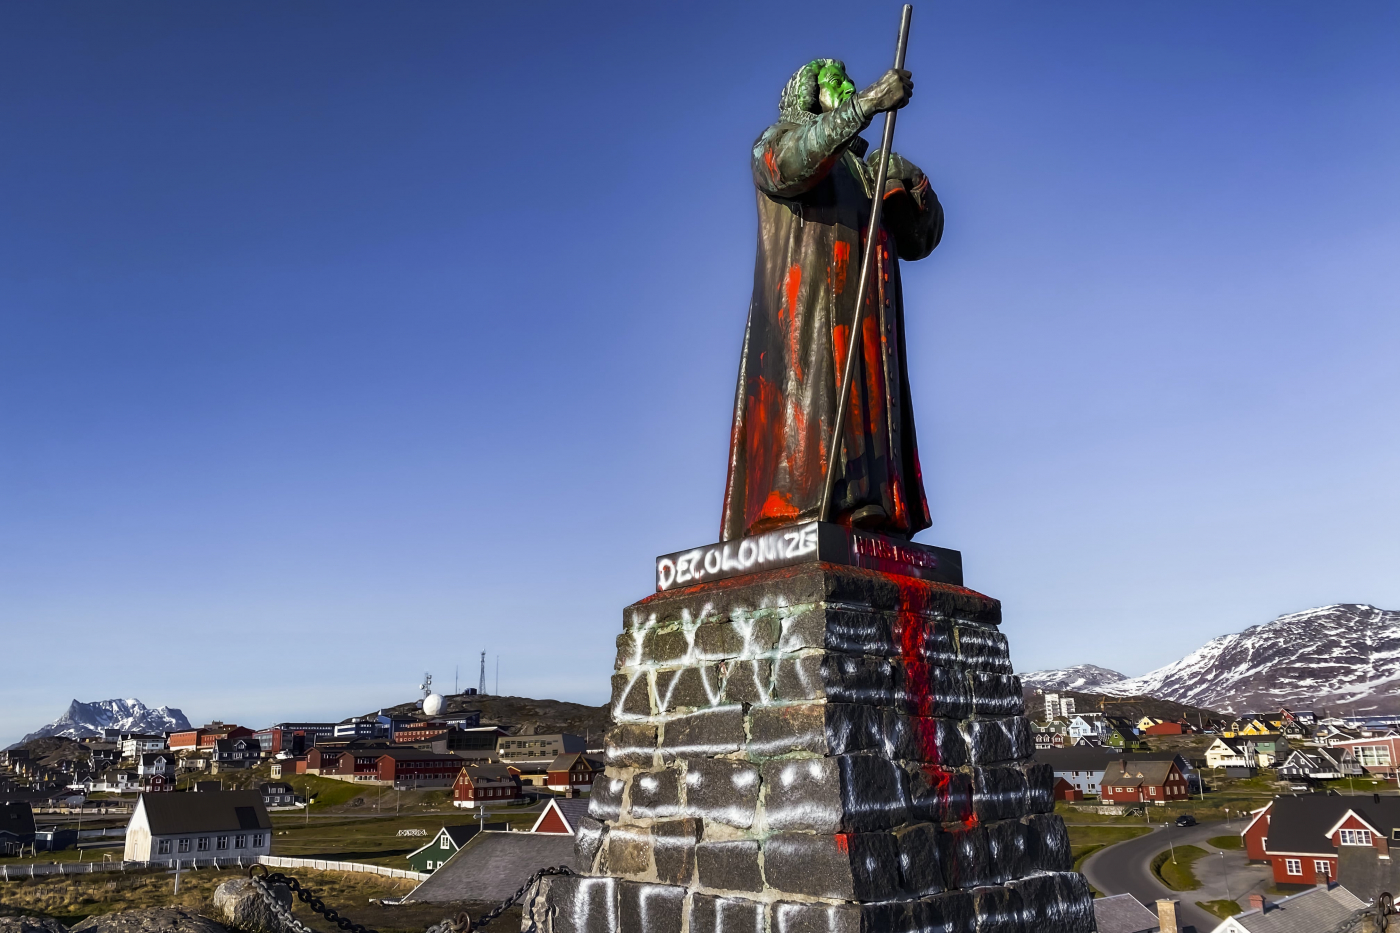 Hans Egede Statue in Nuuk splashed with paint. Photo by Kim Insuk - Visit Greenland.